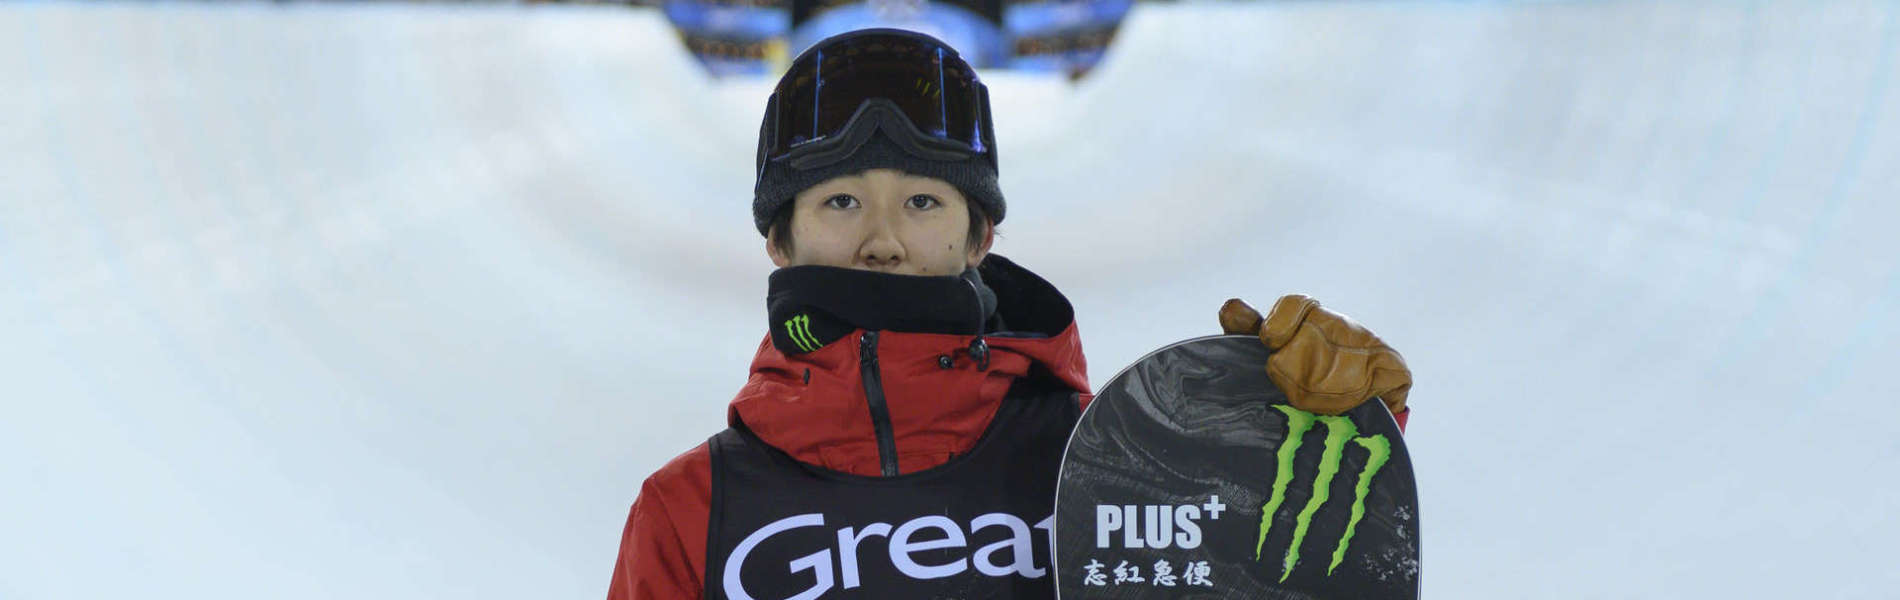 Japanese rookie Yuto Totsuka takes silver in Monster Energy Men's Snowboard Superpipe on the final day of X Games Aspen 2019